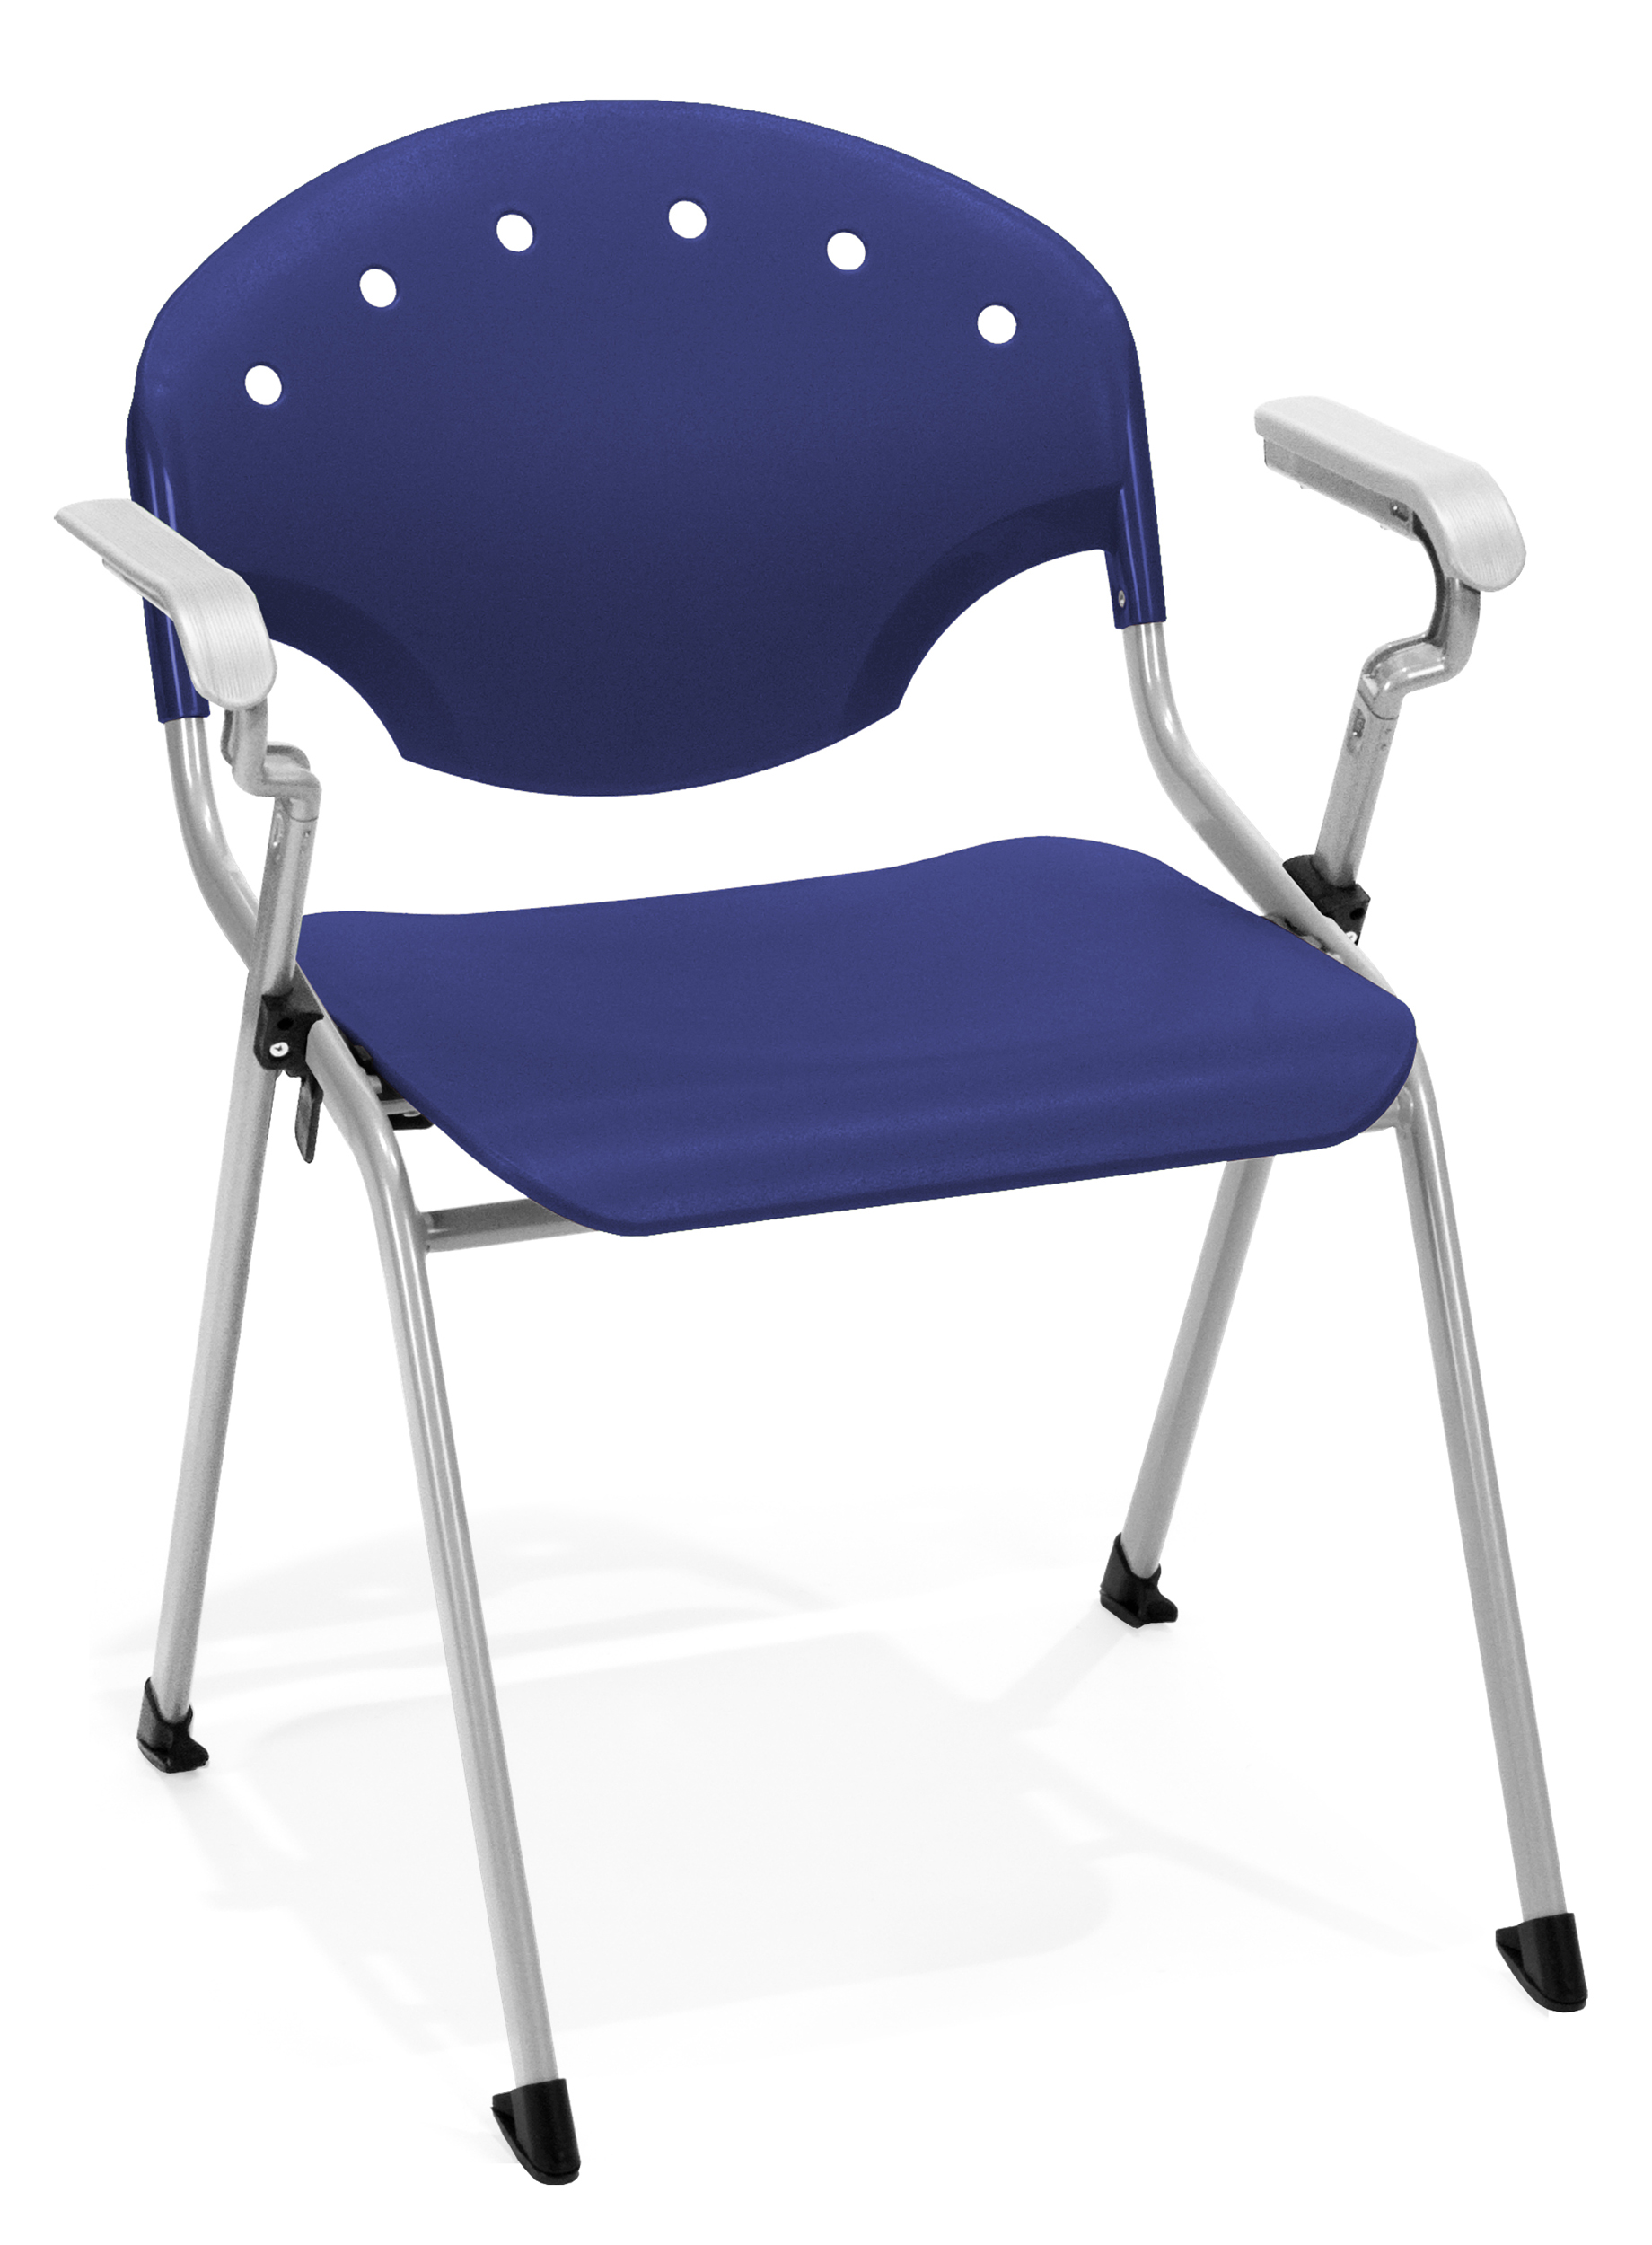 4 PACK OFM Rico Stacking Chair with Arms